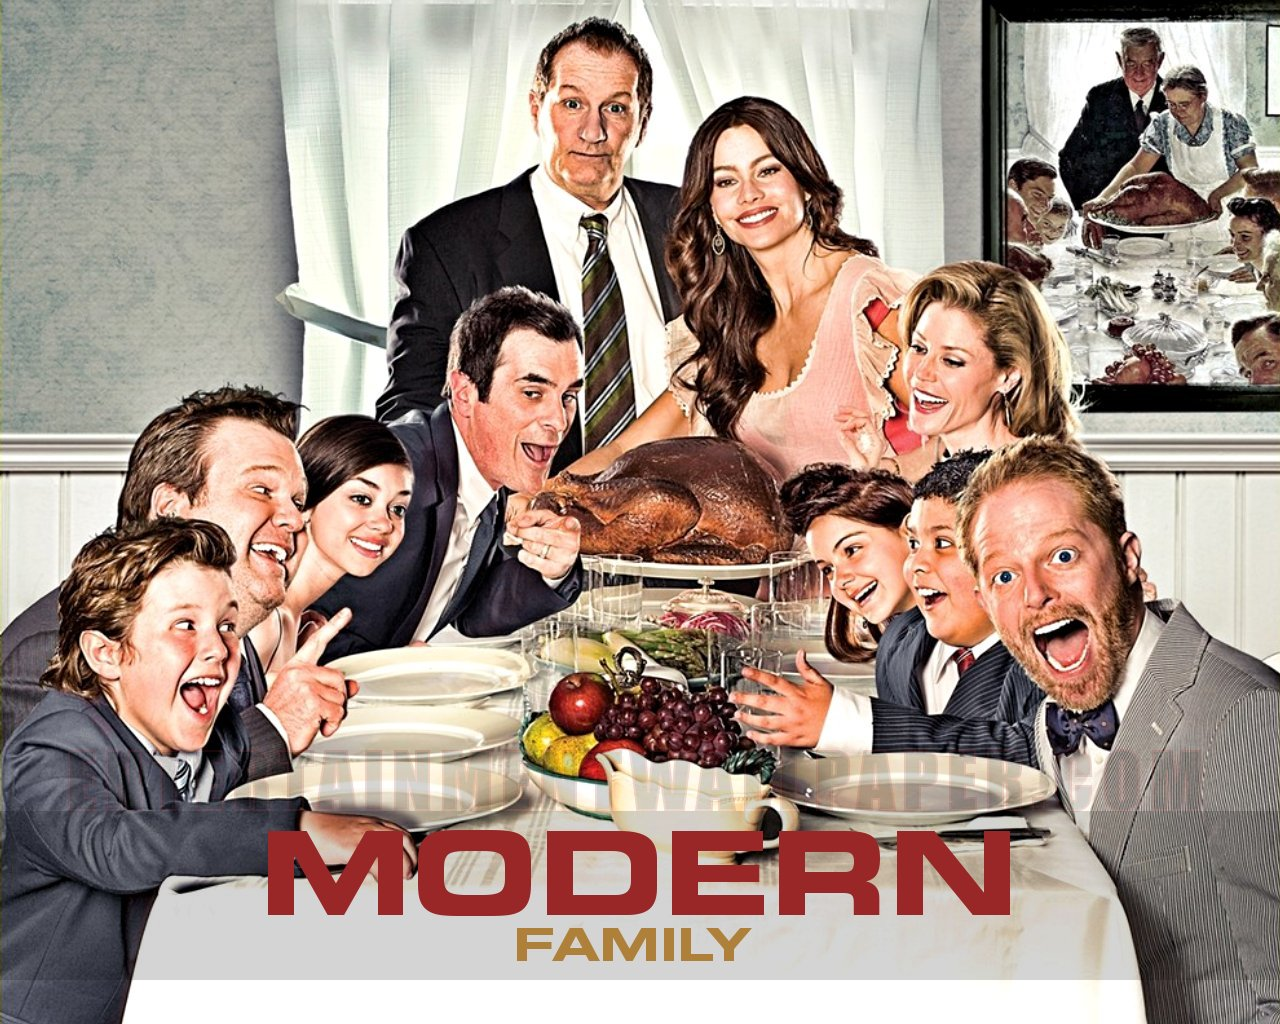 modern family images wallpaper - photo #3